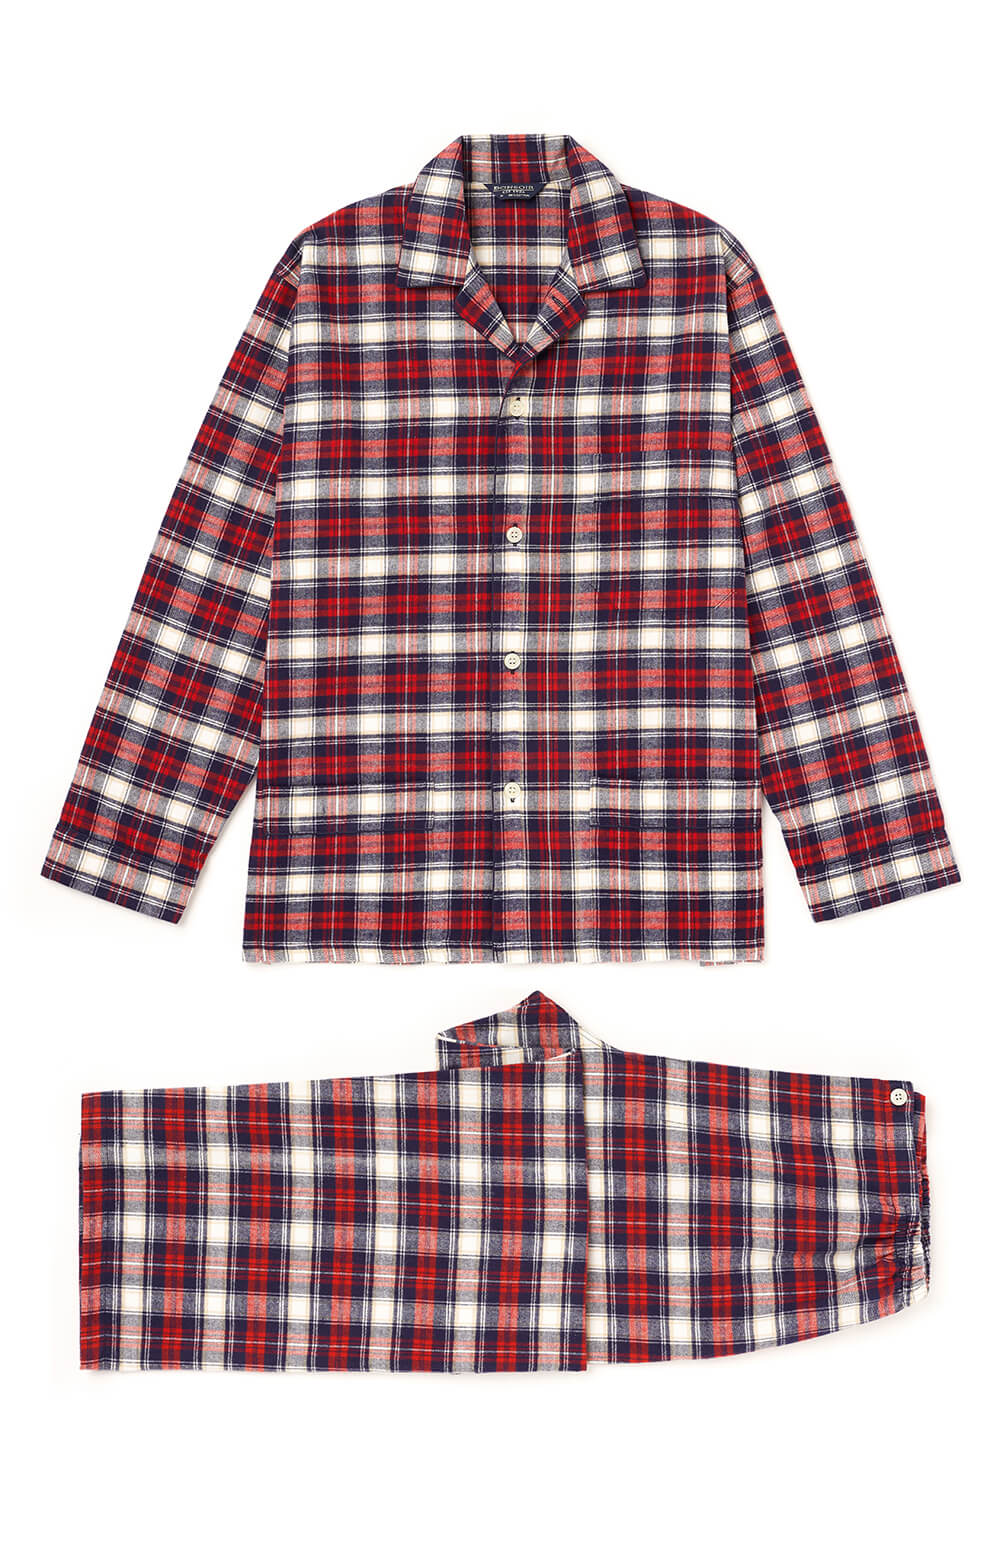 Men's Brushed Cotton Pyjamas - Stewart Plaid